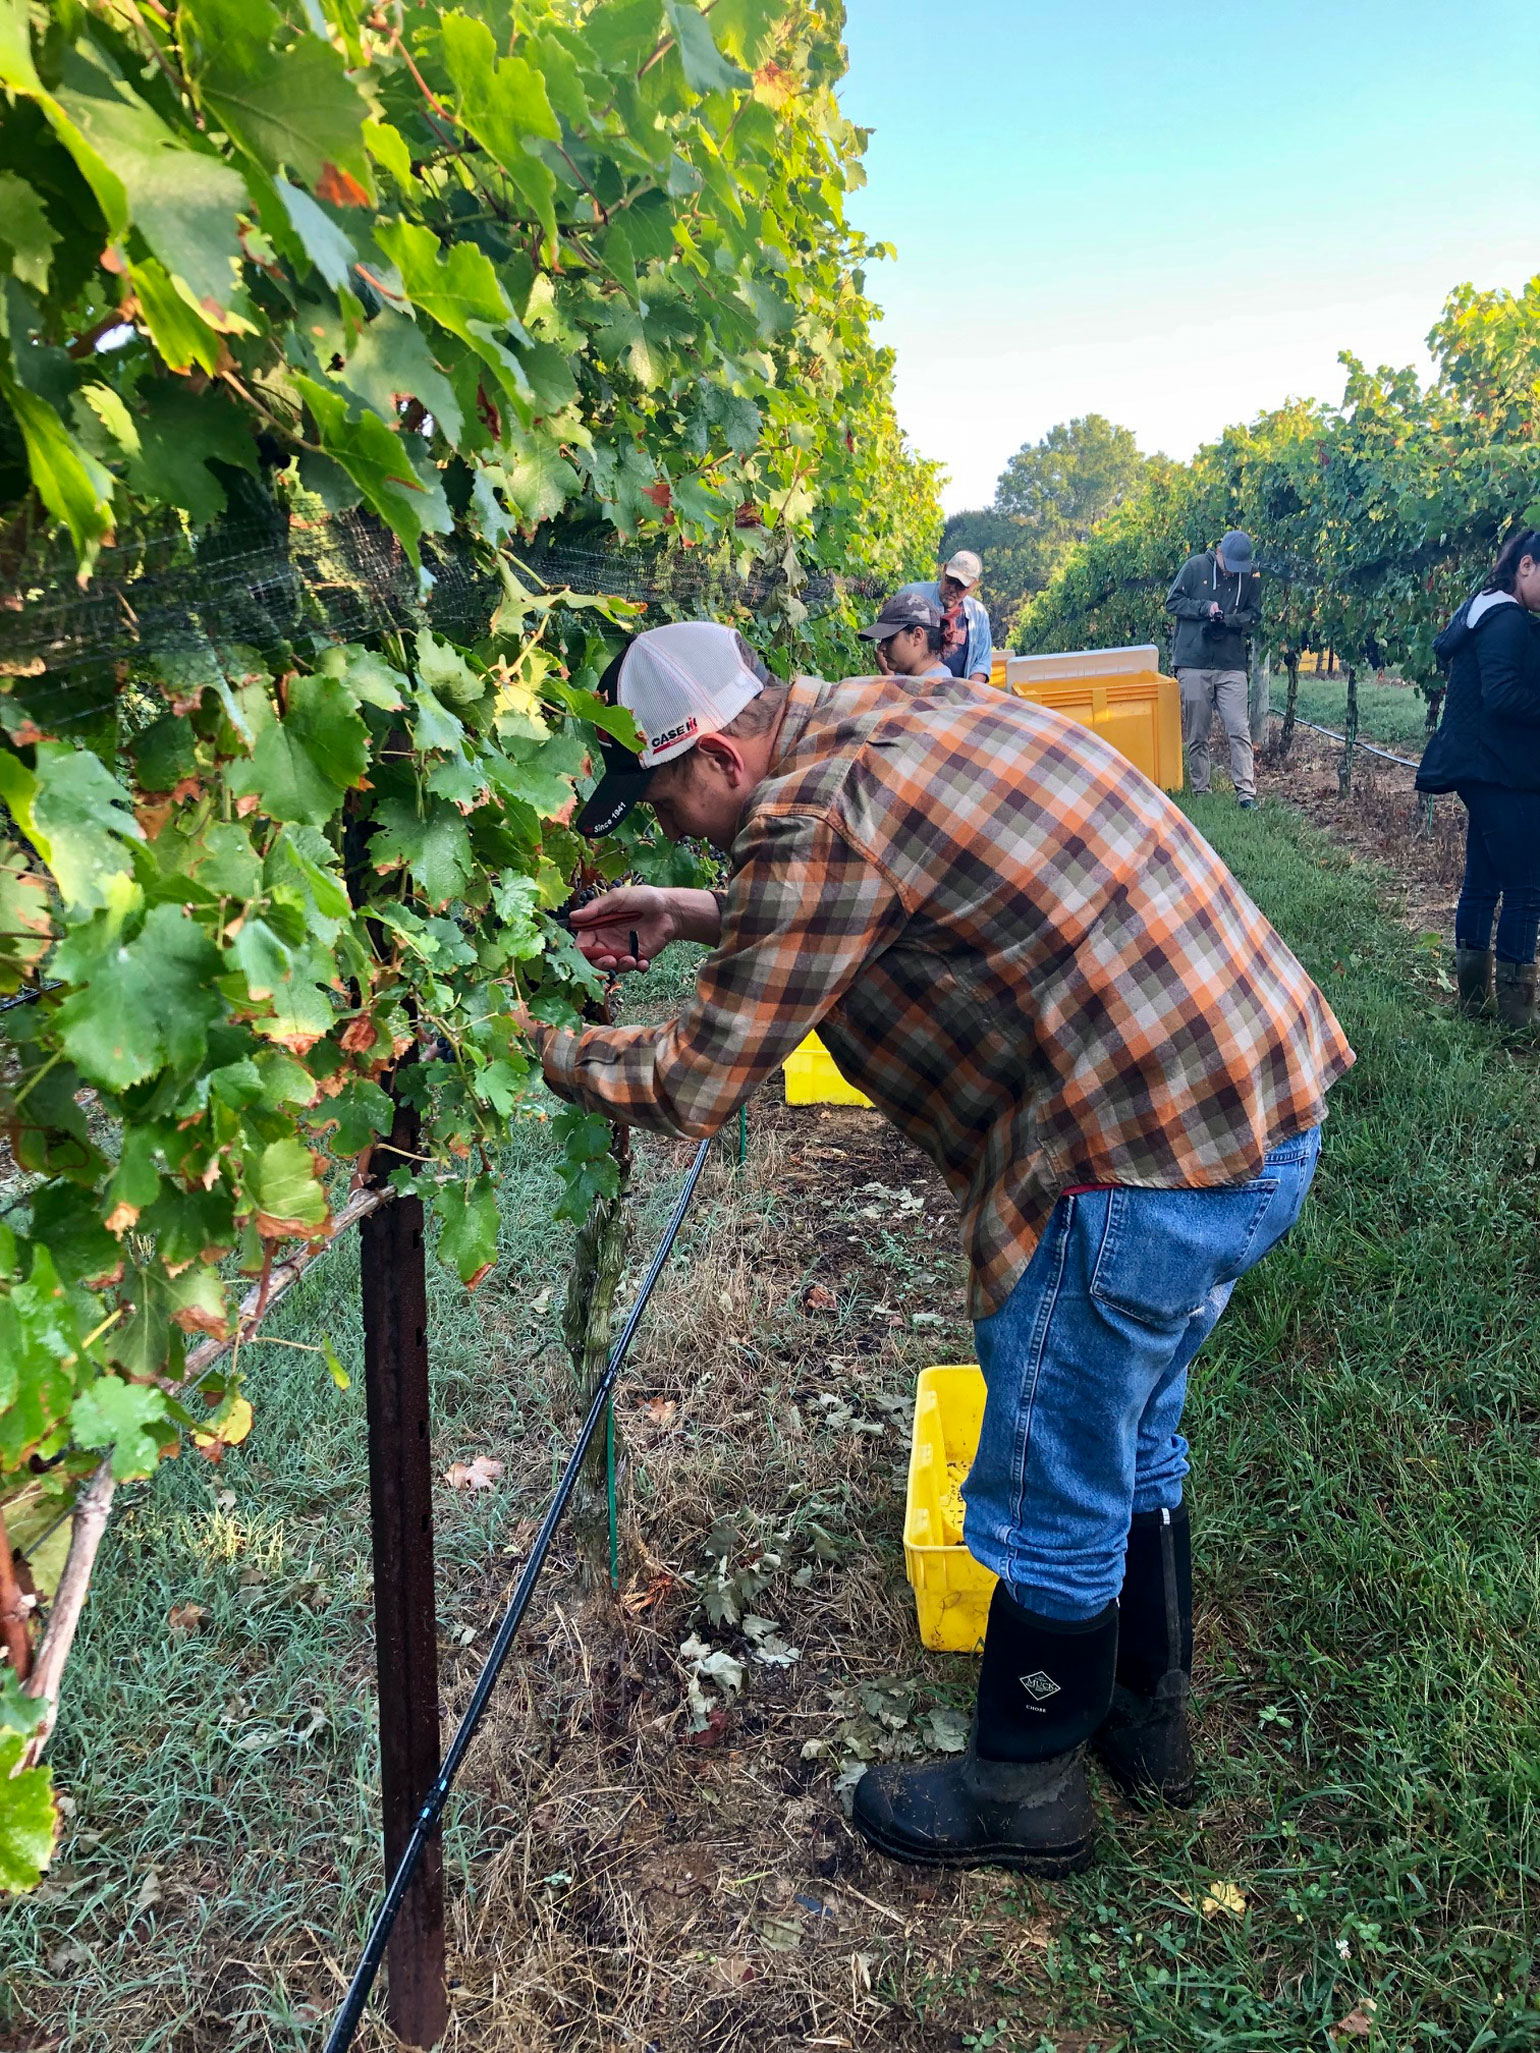 Workers harvest grapes by hand at Robin Hill Farms and Vineyard